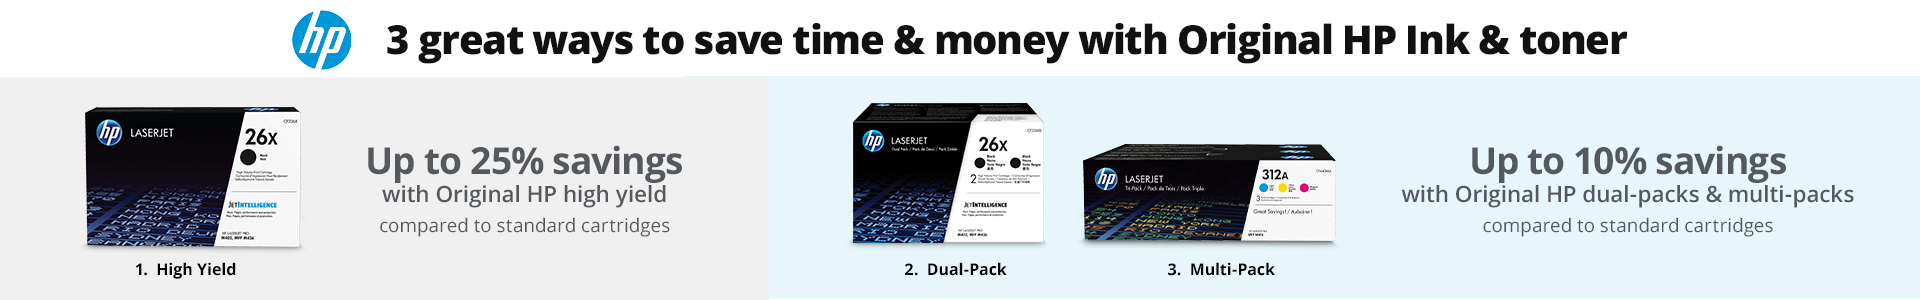 HP Ink and Toner at Office Depot OfficeMax